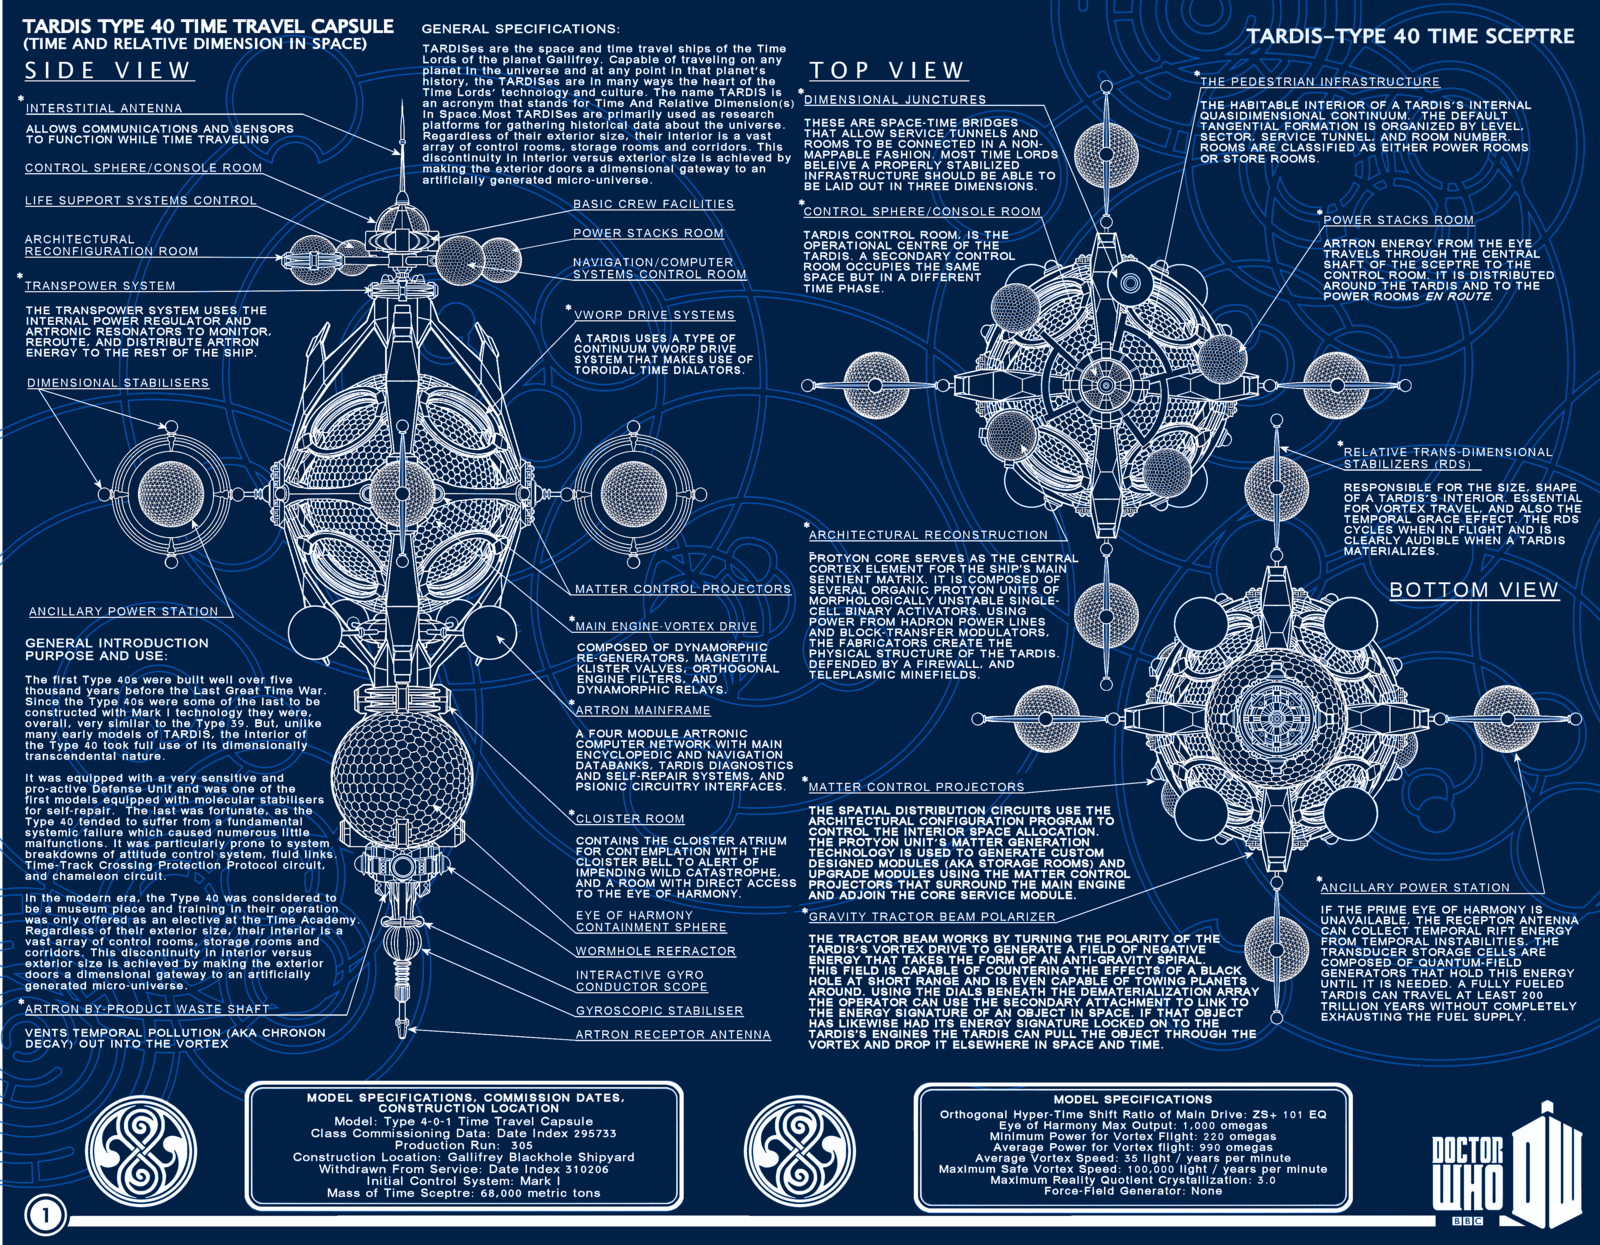 Pin by nigel rudolph on fam 2017 poster pinterest tardis type 40 schematic blue print style page 1 by time lord rassilon on deviantart malvernweather Gallery